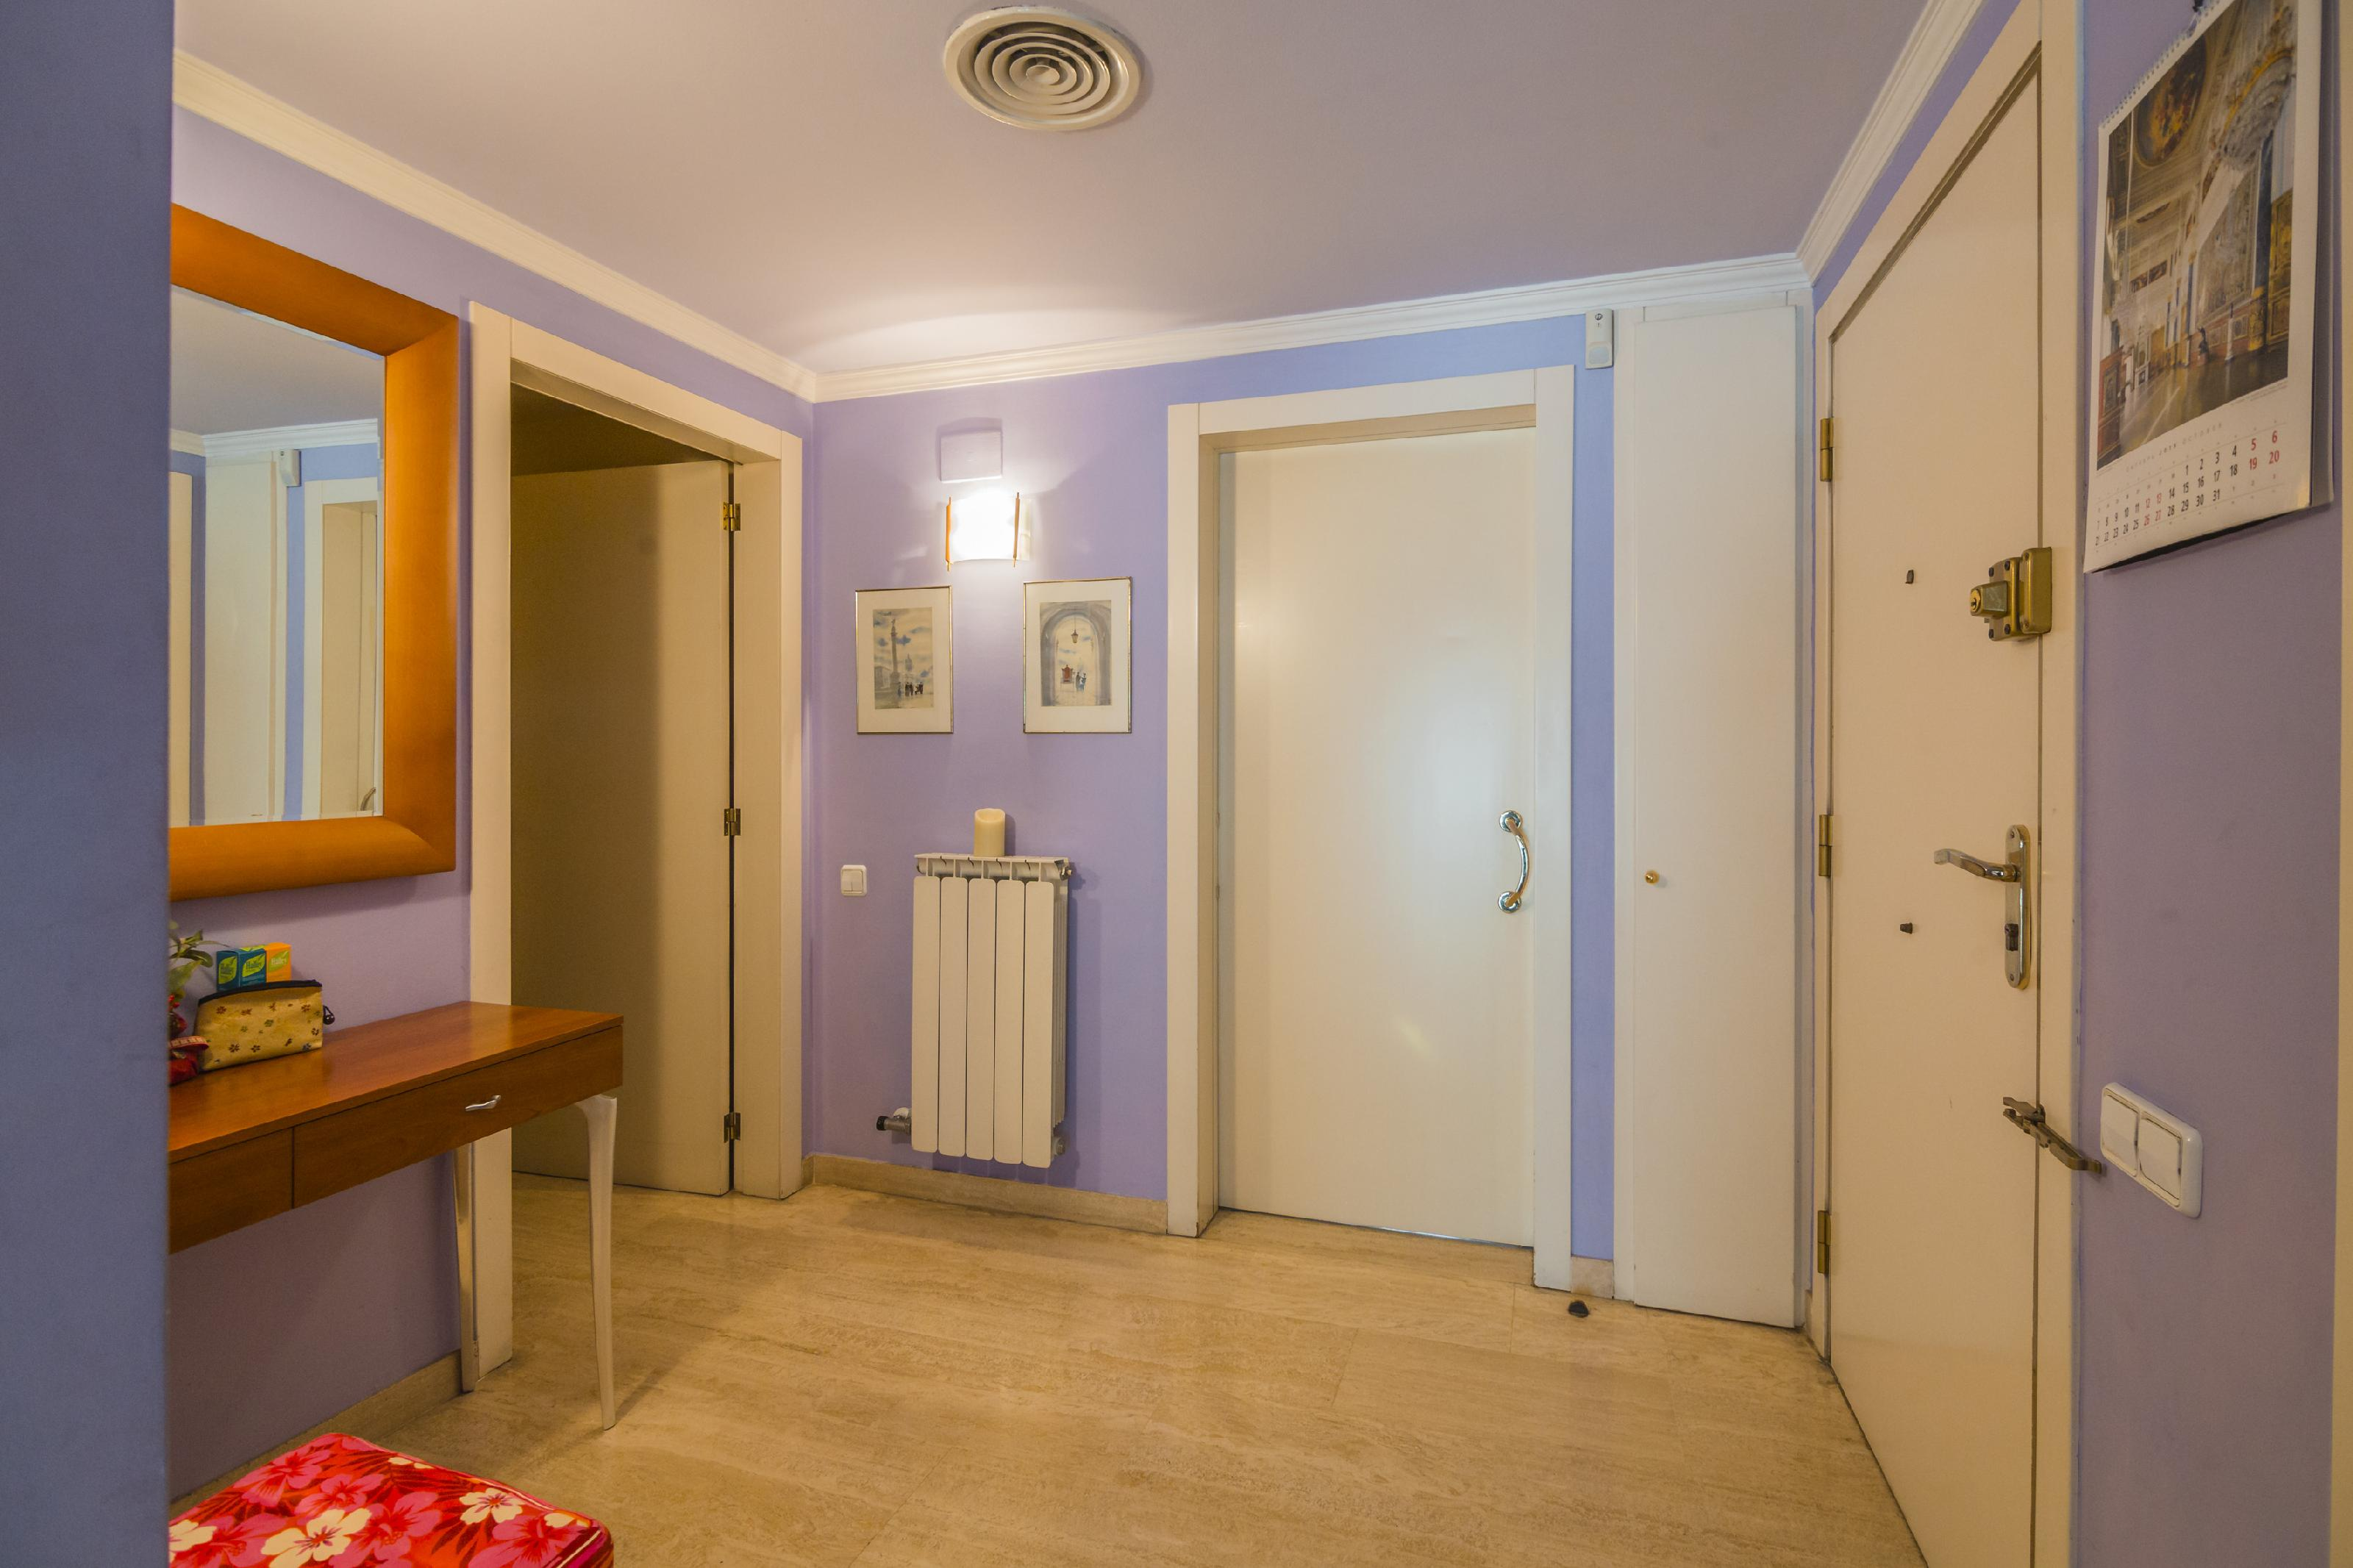 232637 Penthouse for sale in Sarrià-Sant Gervasi, Sant Gervasi-Galvany 13